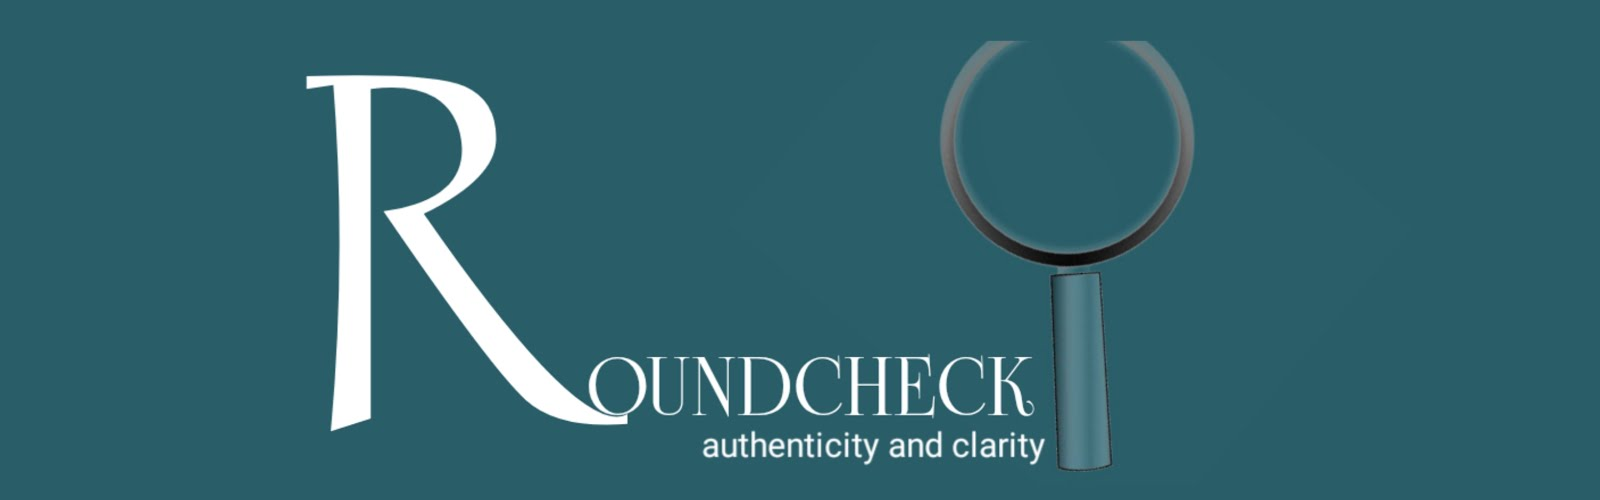 Roundcheck - Independent Factchecking platform